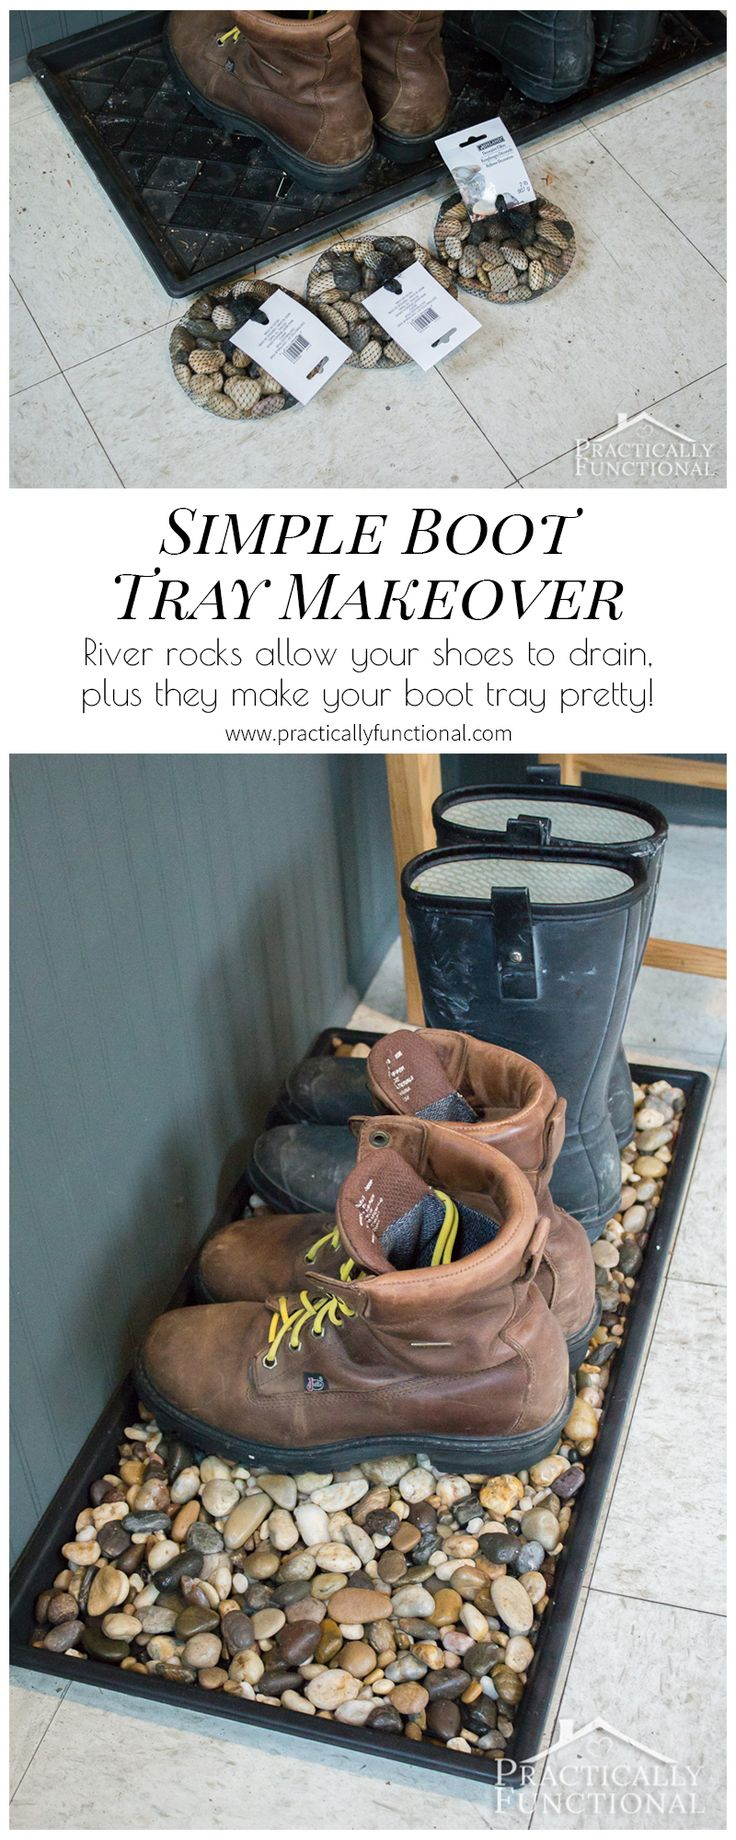 Give a plain boot tray a 2 minute makeover with river rocks; they allow your shoes to drain and make the tray look pretty!